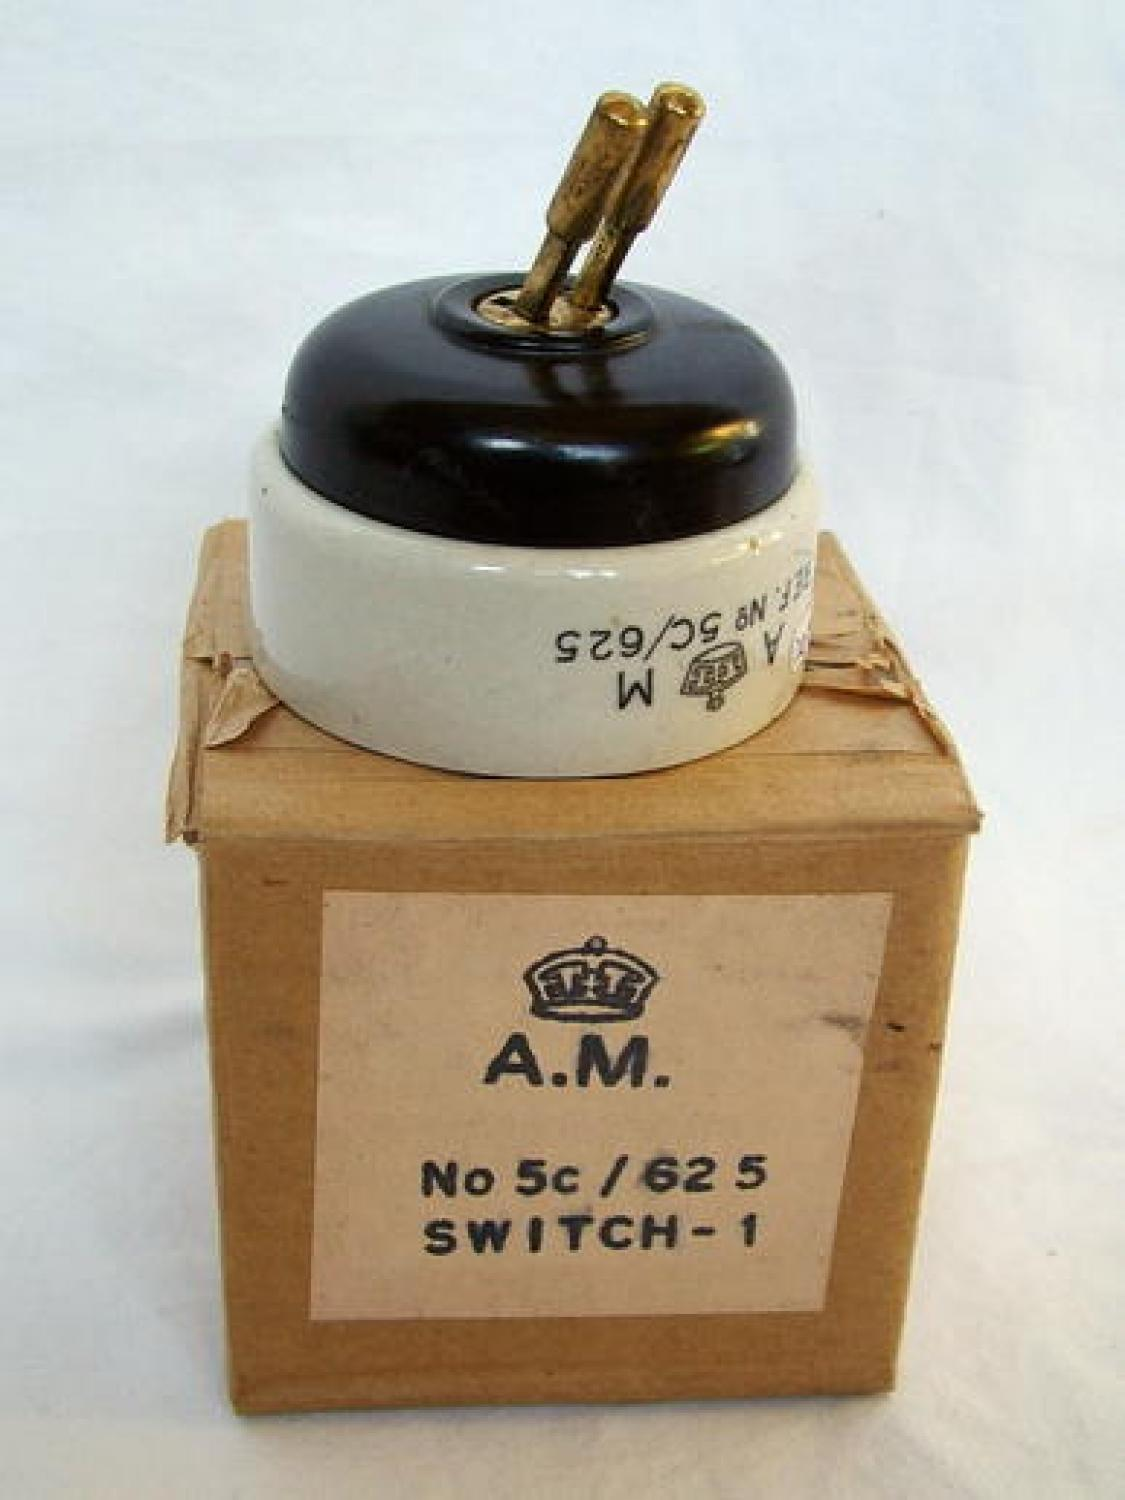 Air Ministry Aircraft Magneto Switch